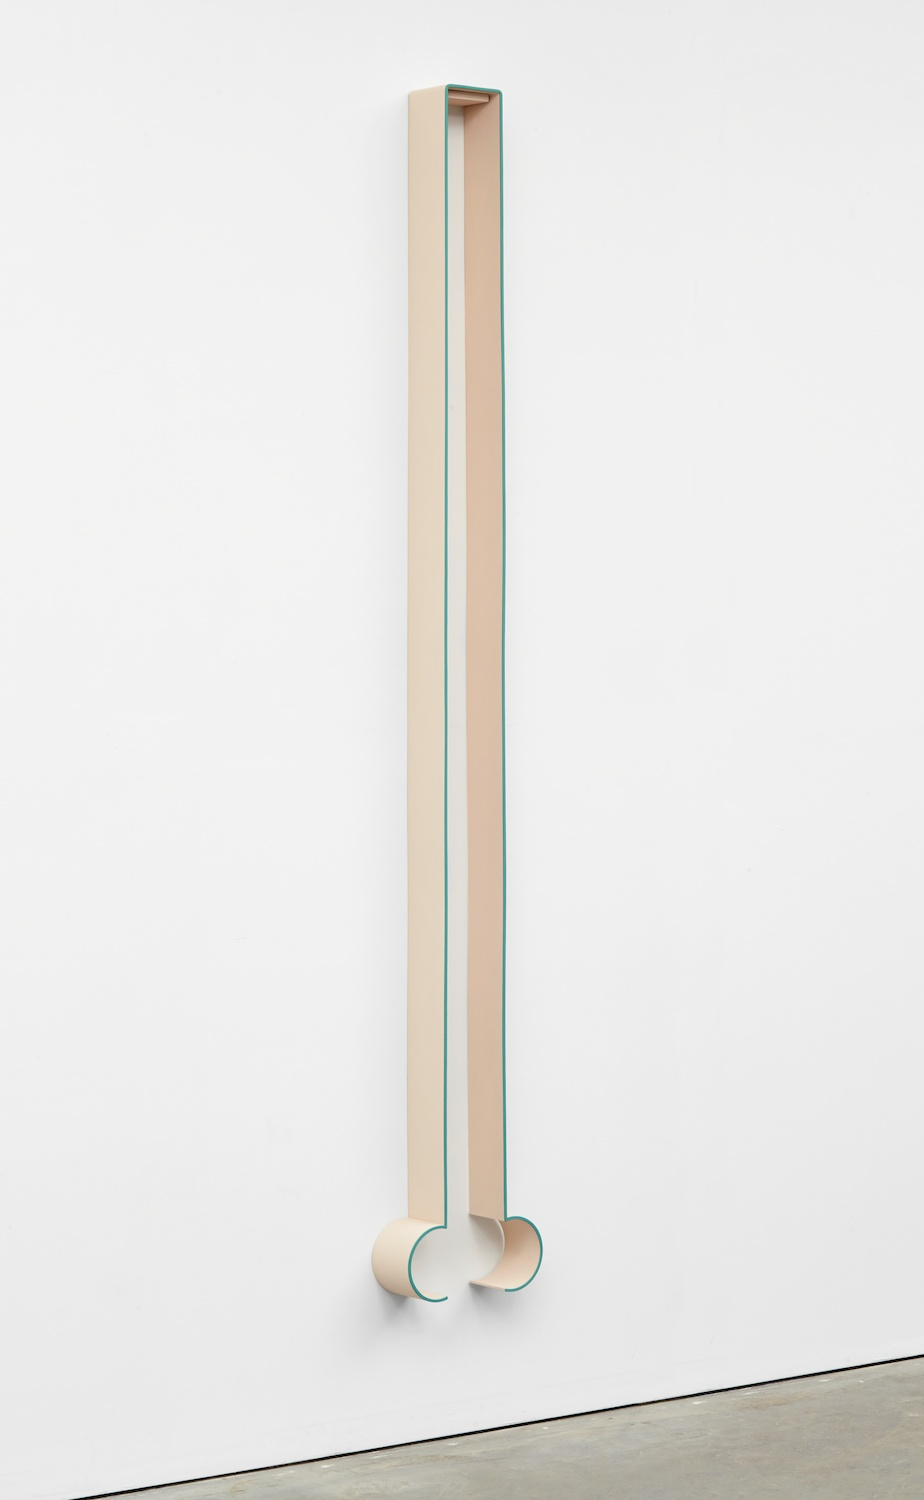 "Lisa Williamson Bump, Hairpin 2013 Acrylic on powder-coated steel 80"" x 14"" x 4"" LW117"